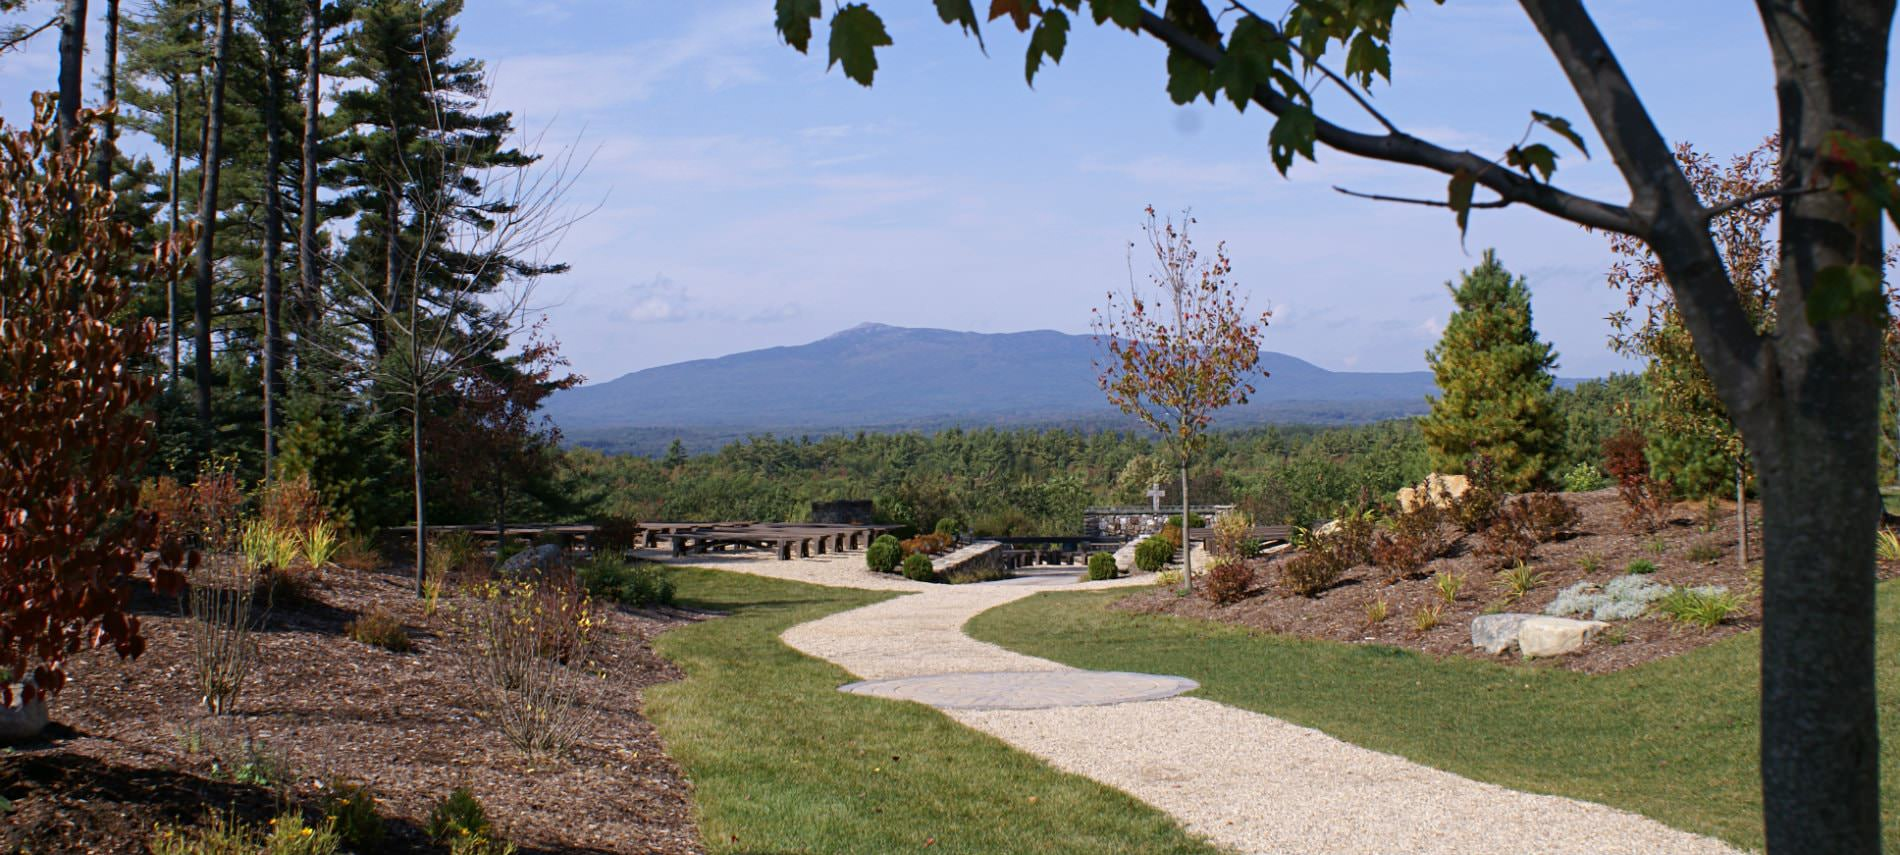 Beautiful property with gravel sidewalk, green grass, mulched landscaping, trees and view of Mount Monadnock